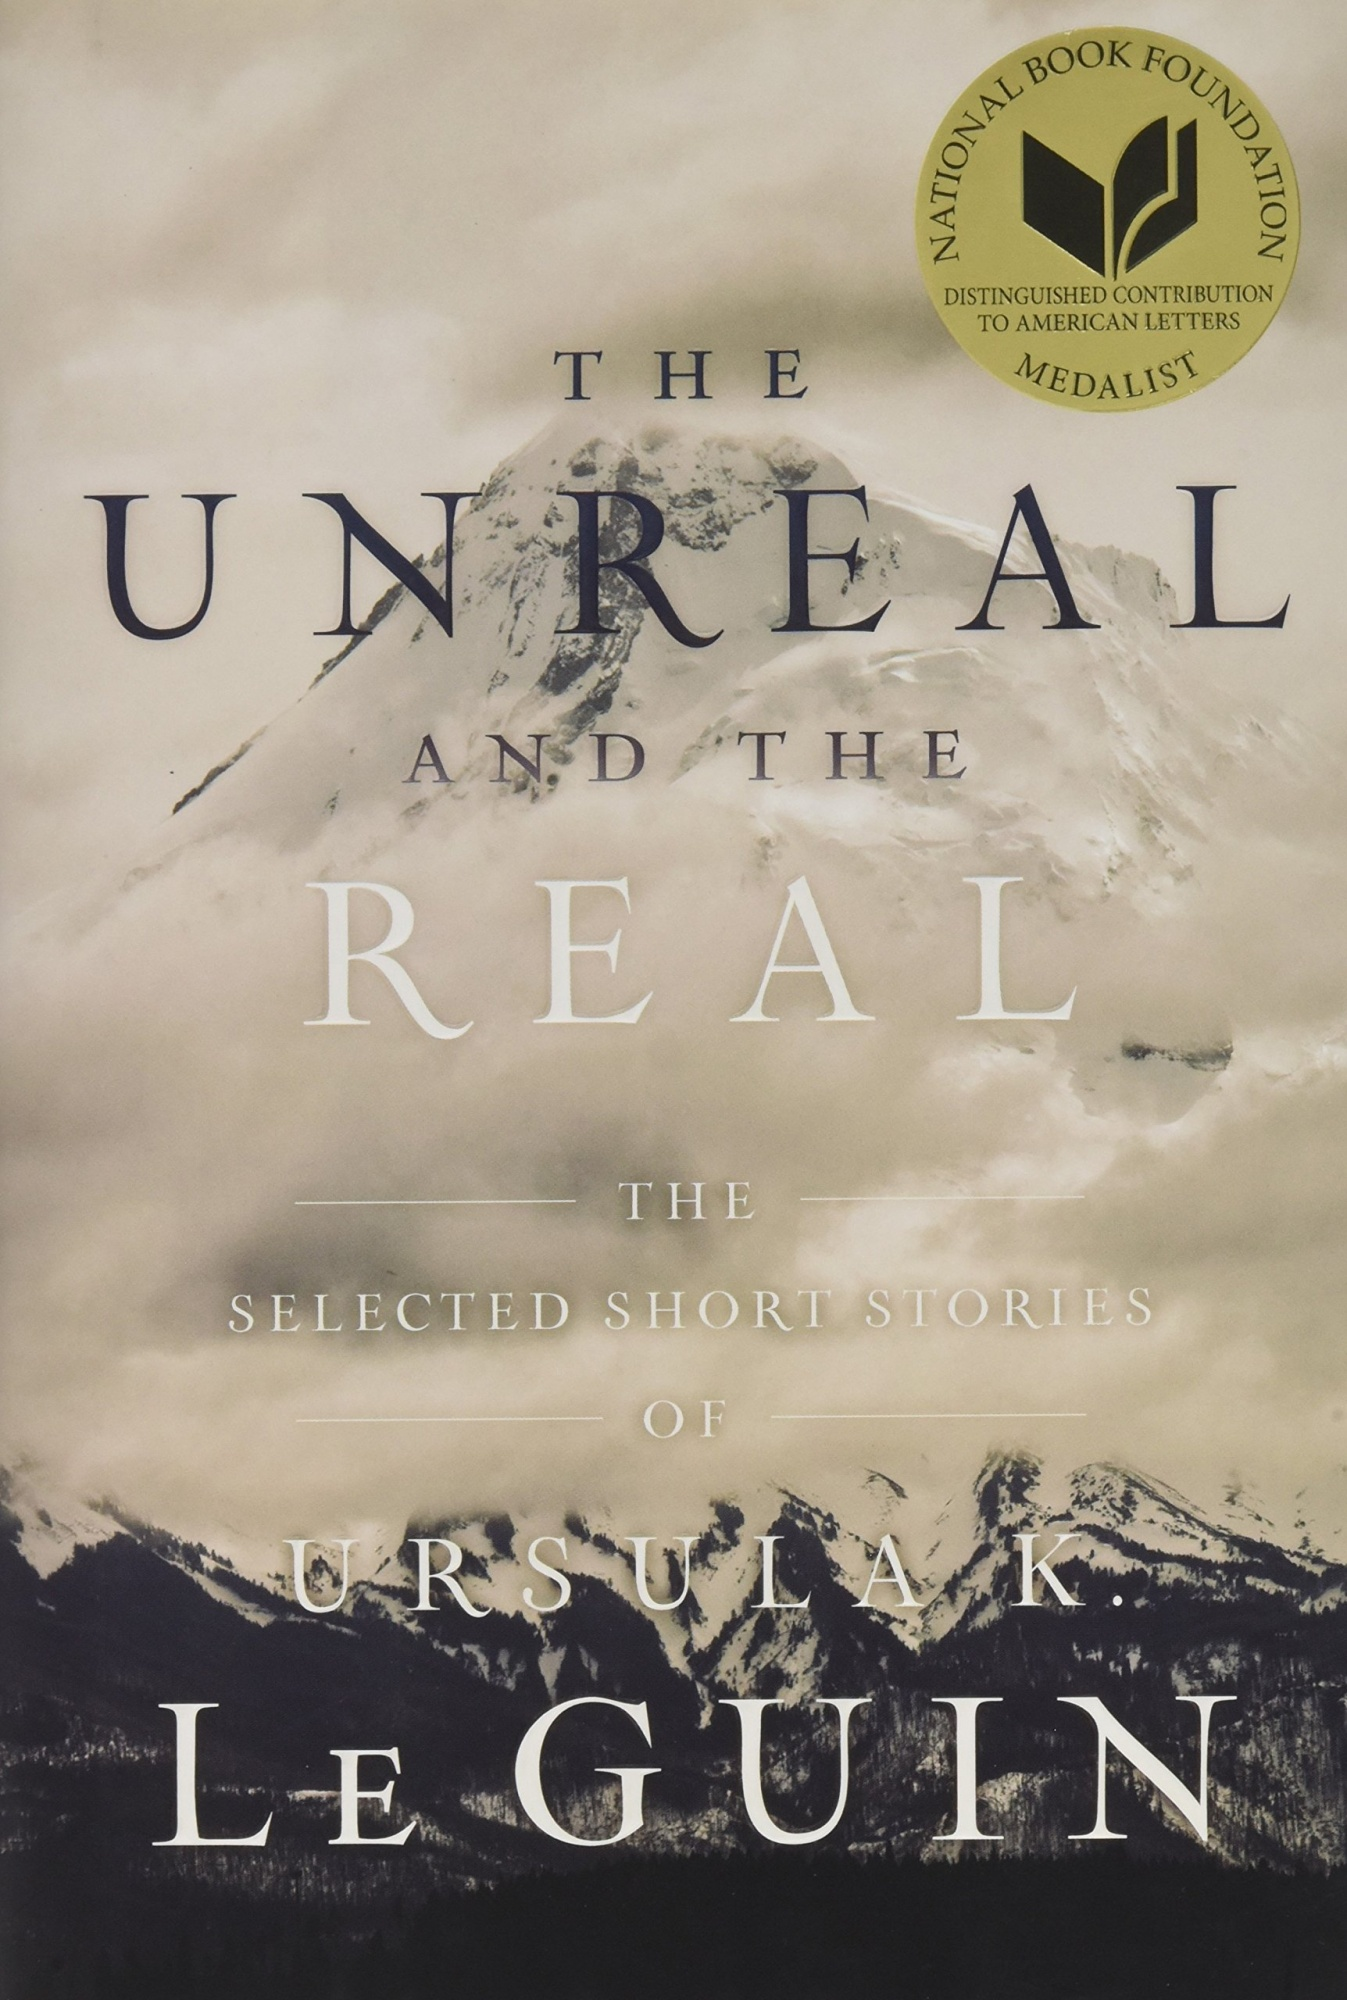 The Unreal and the Real: The Selected Short Stories of Ursula K. Le Guin by Ursula K Le Guin, ISBN: 9781481475969